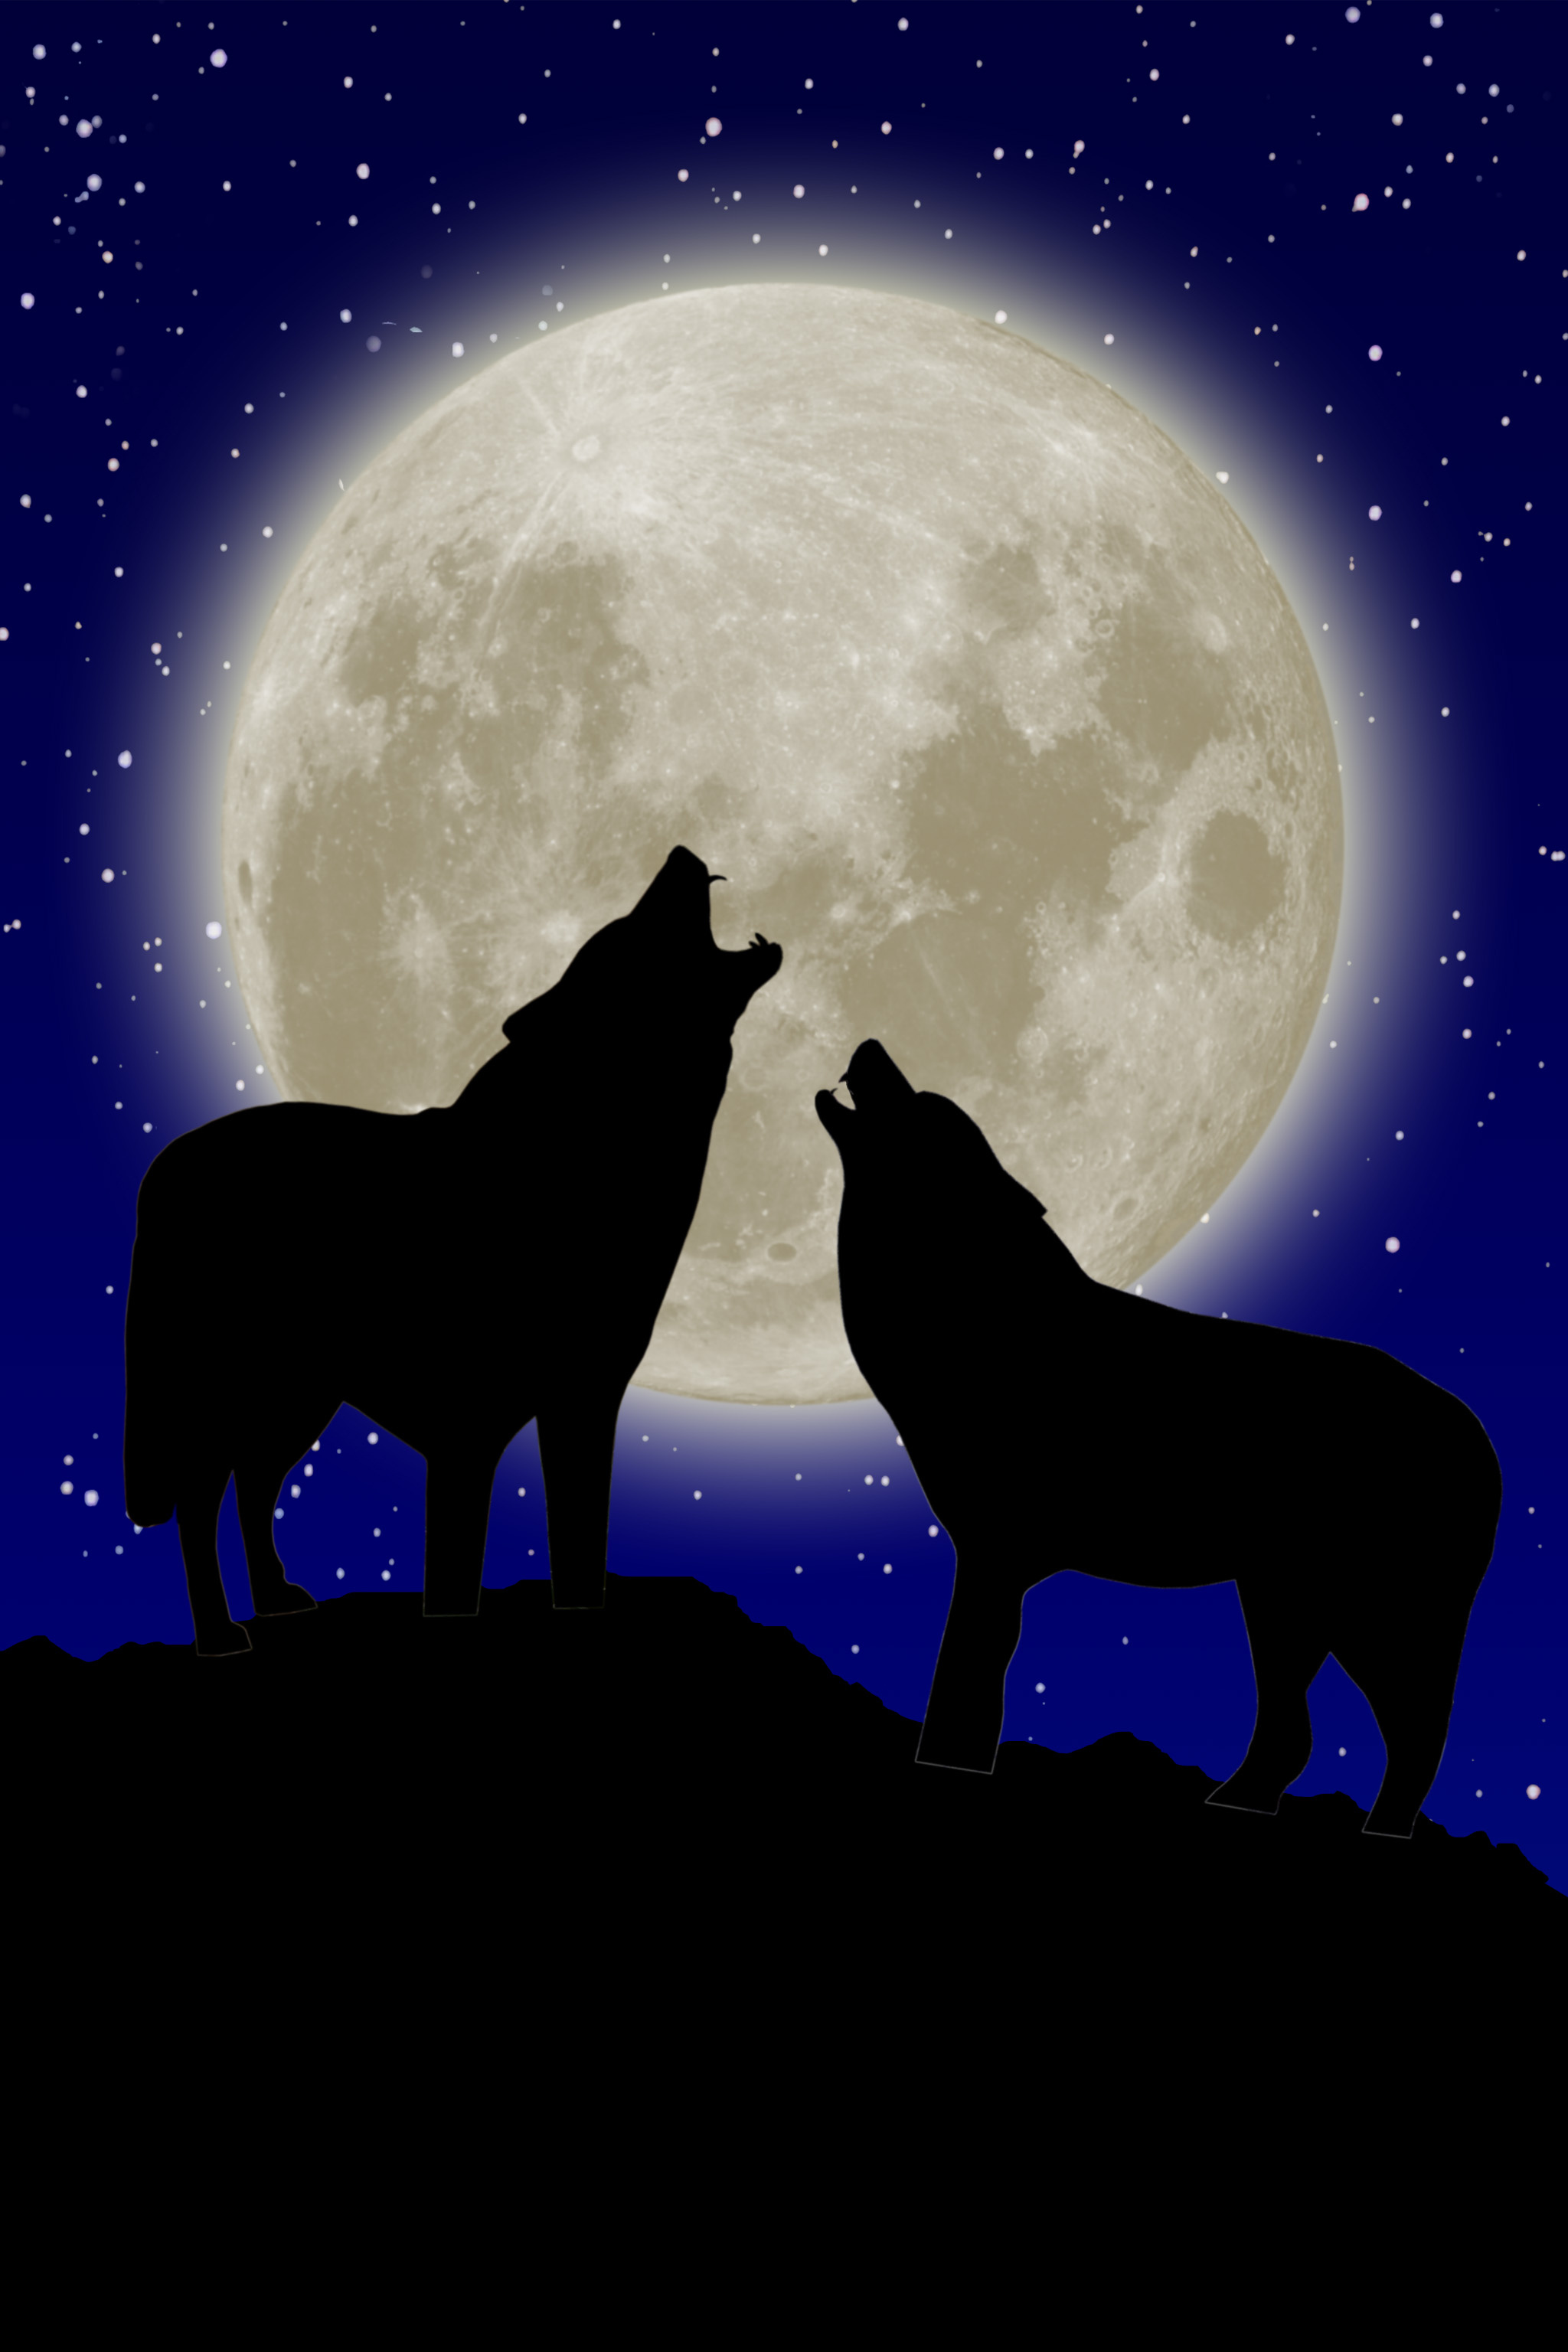 free online personals in moon Swipe back and forth to move through the phases of the moon  take you to the next full moon or new mooninteractive and informative free moon app:.